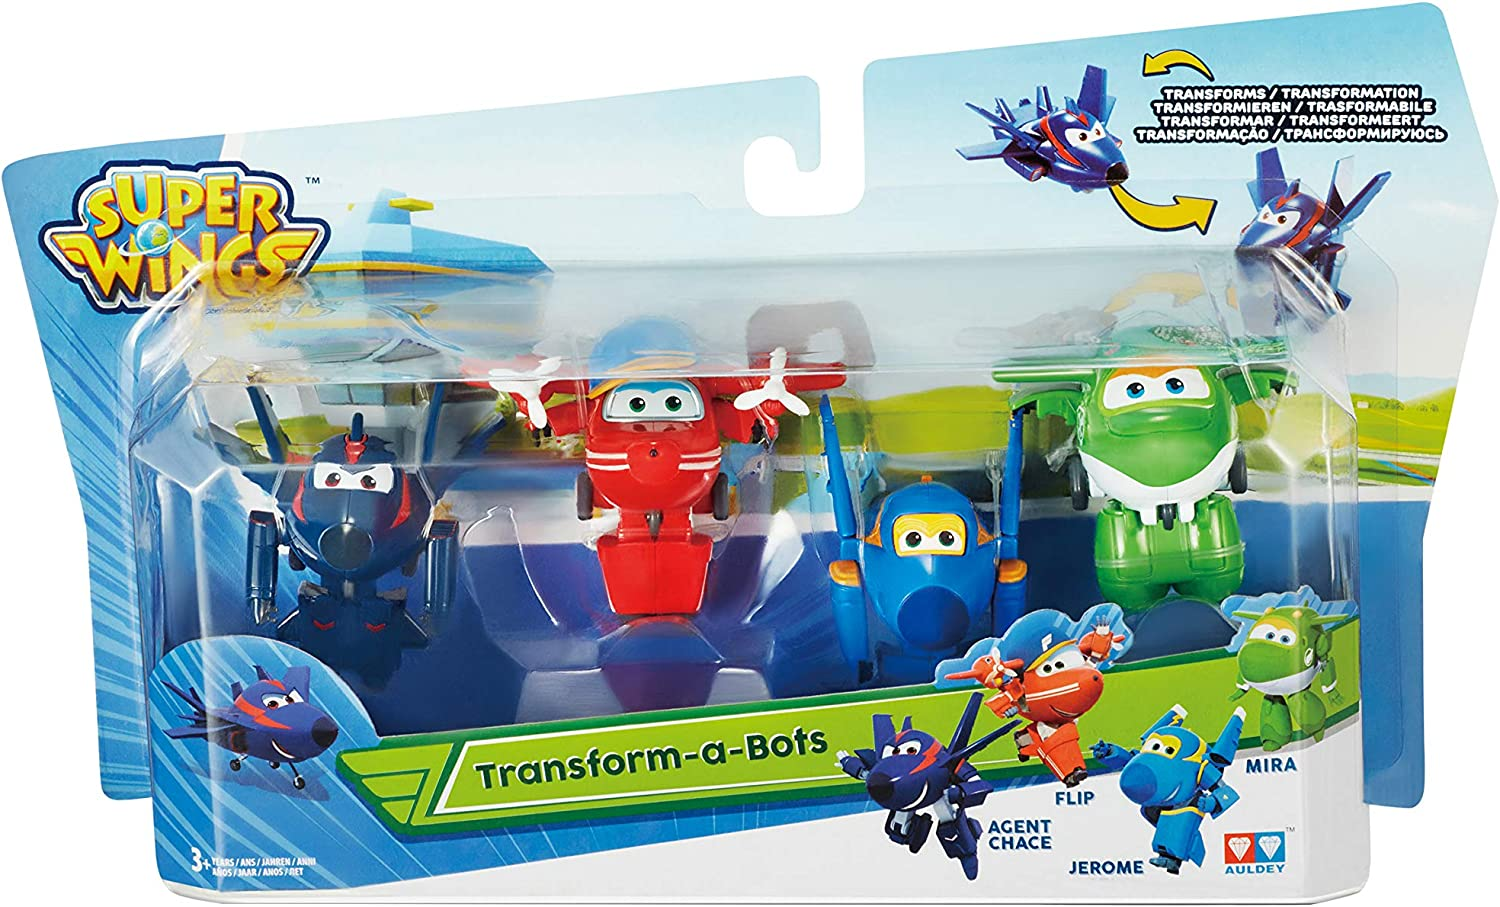 Super Wings Agent Chase, Flip, Jerome, Mira Juguete | Figuras de 5 cm, Color Mixto, 0 (Alpha Animation & Toys Ltd EU720040C)